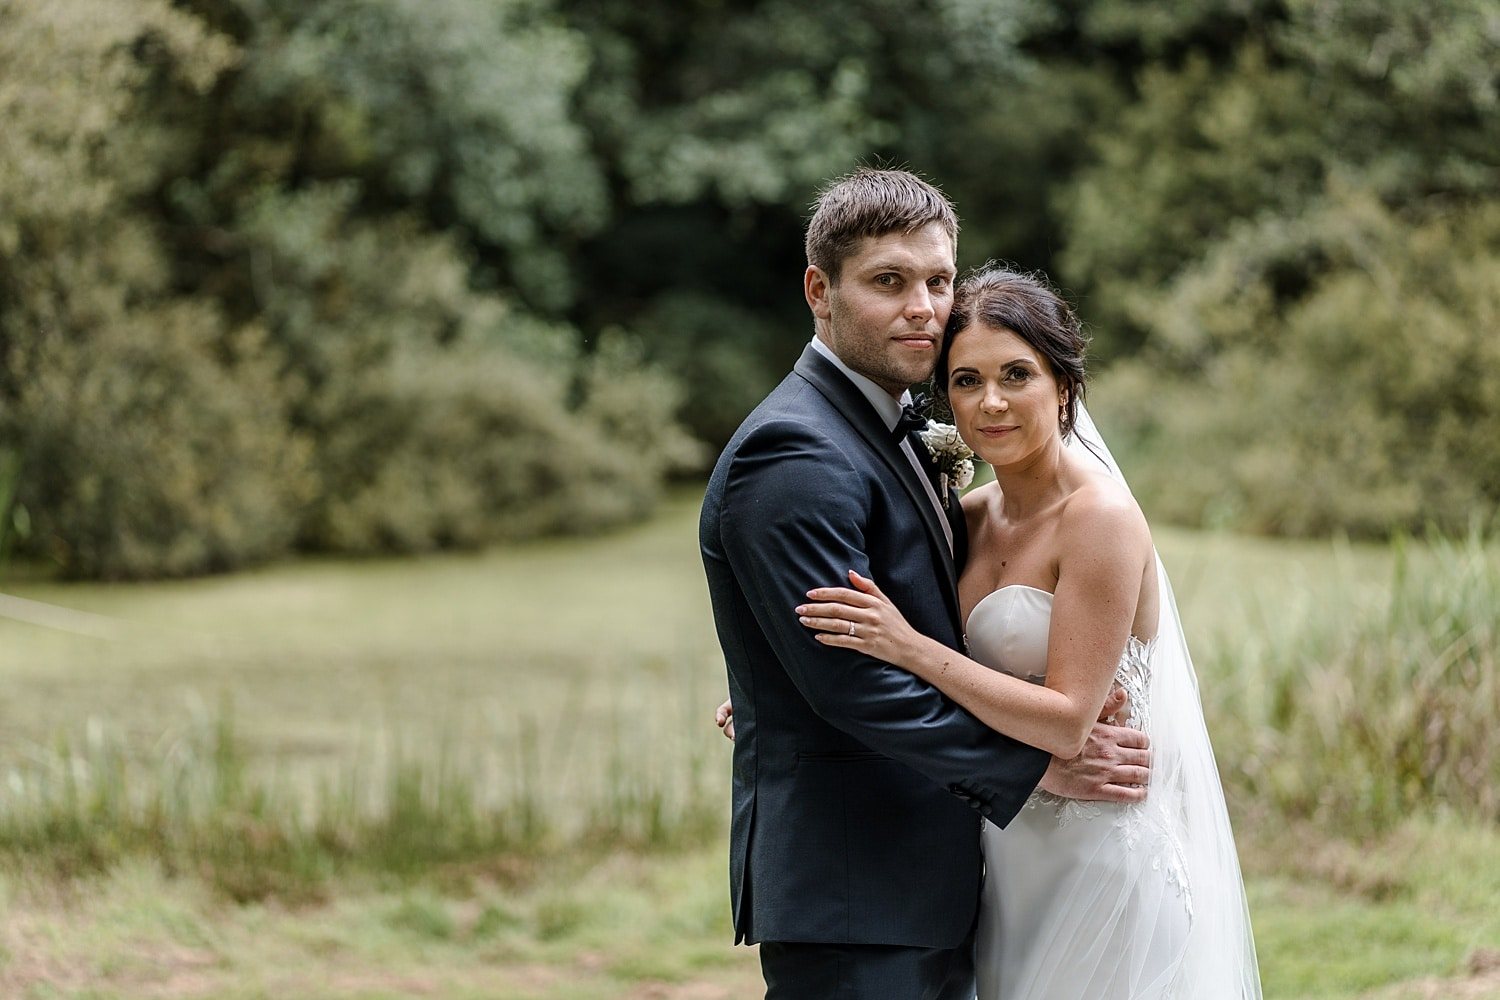 Wedding day portraits at Fairyhill, South Wales